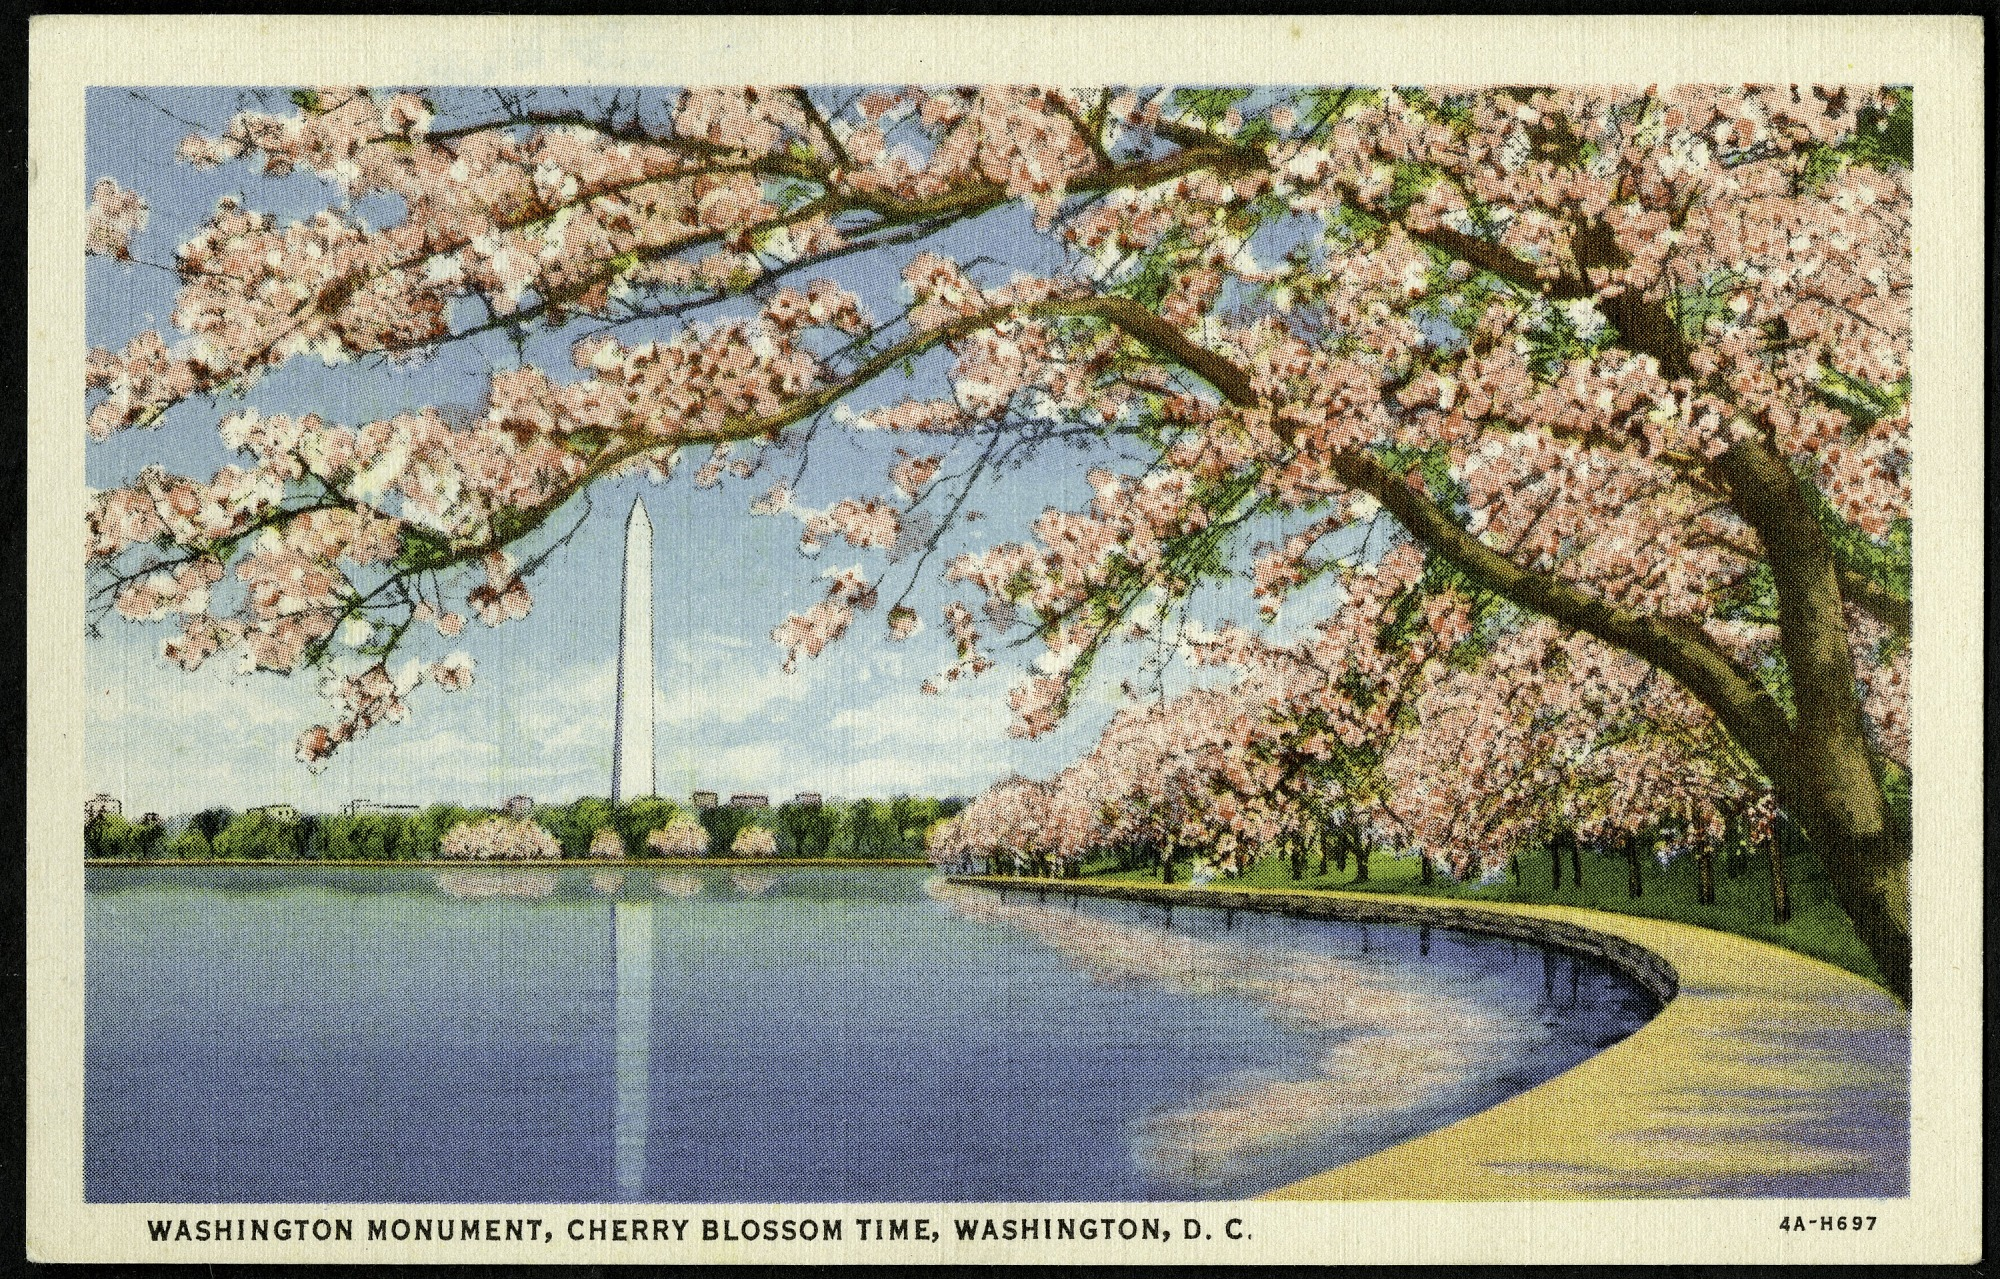 Postcard of Washington Monument during Cherry Blossom Time